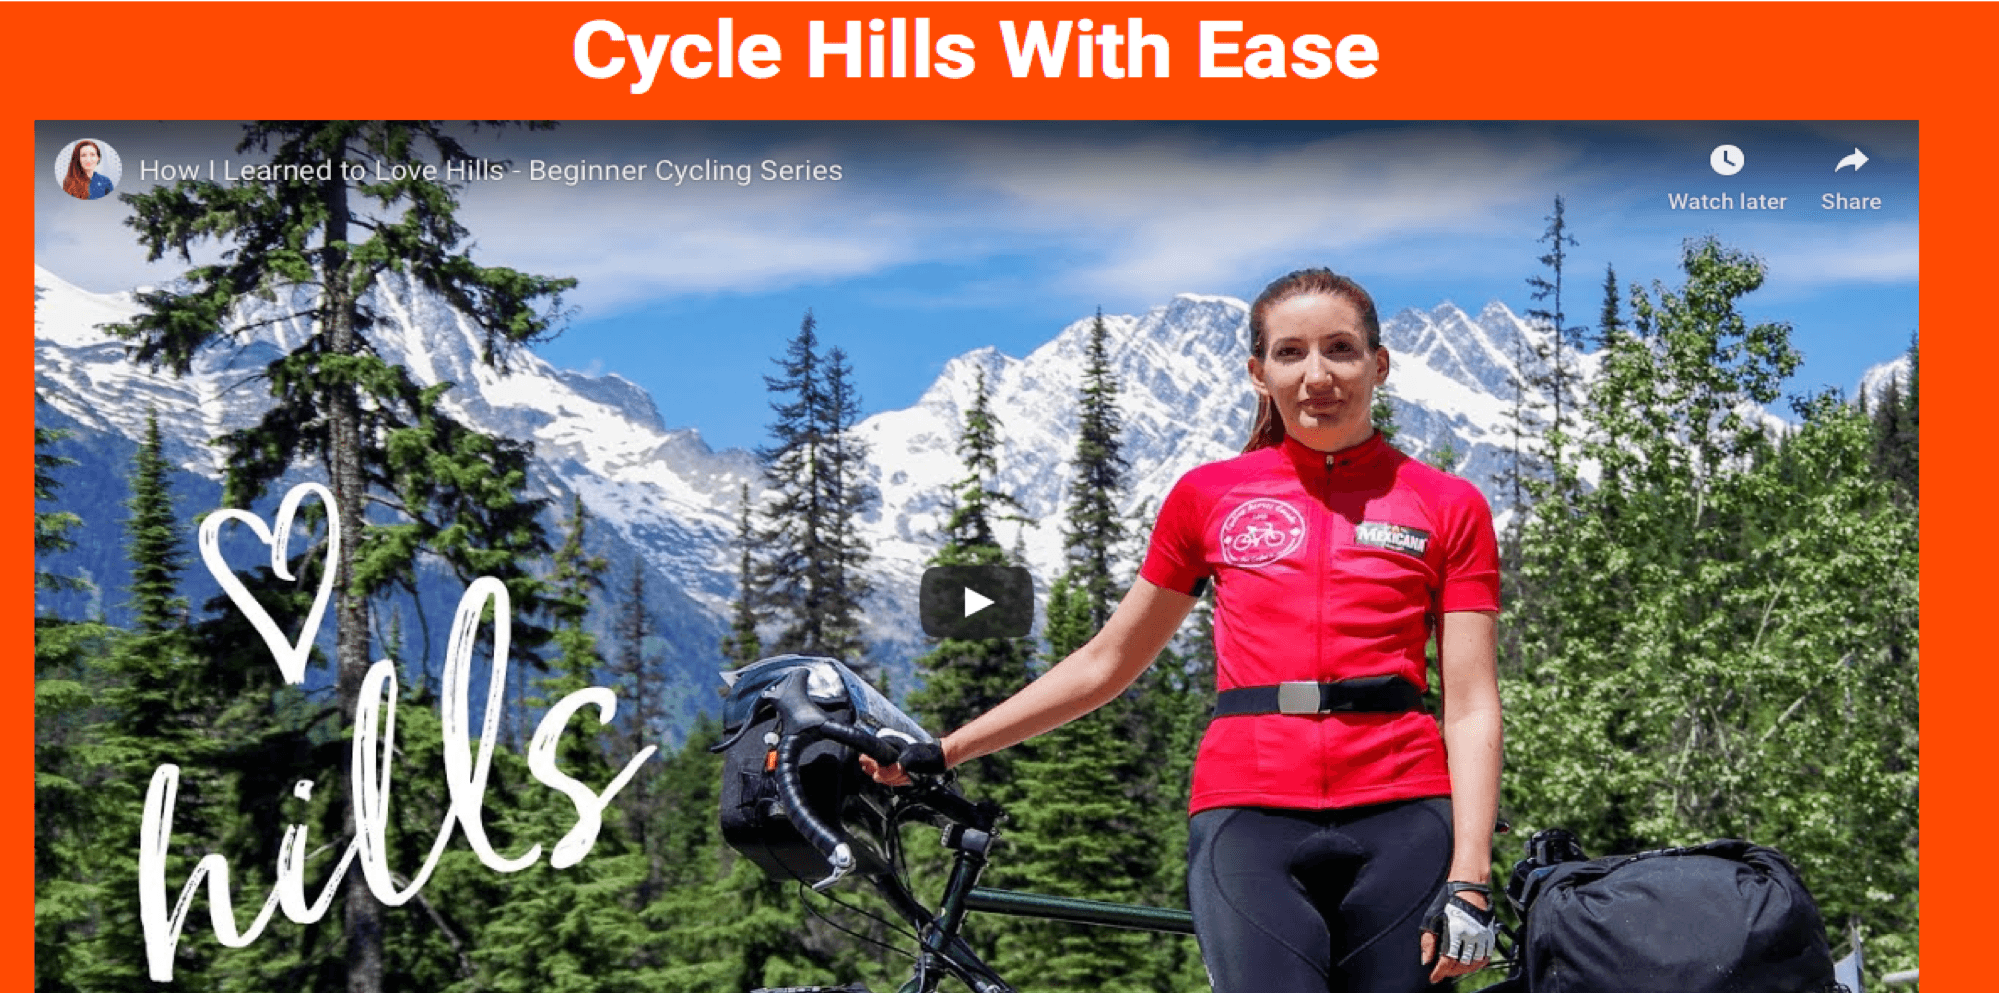 Cycle Hills With Ease